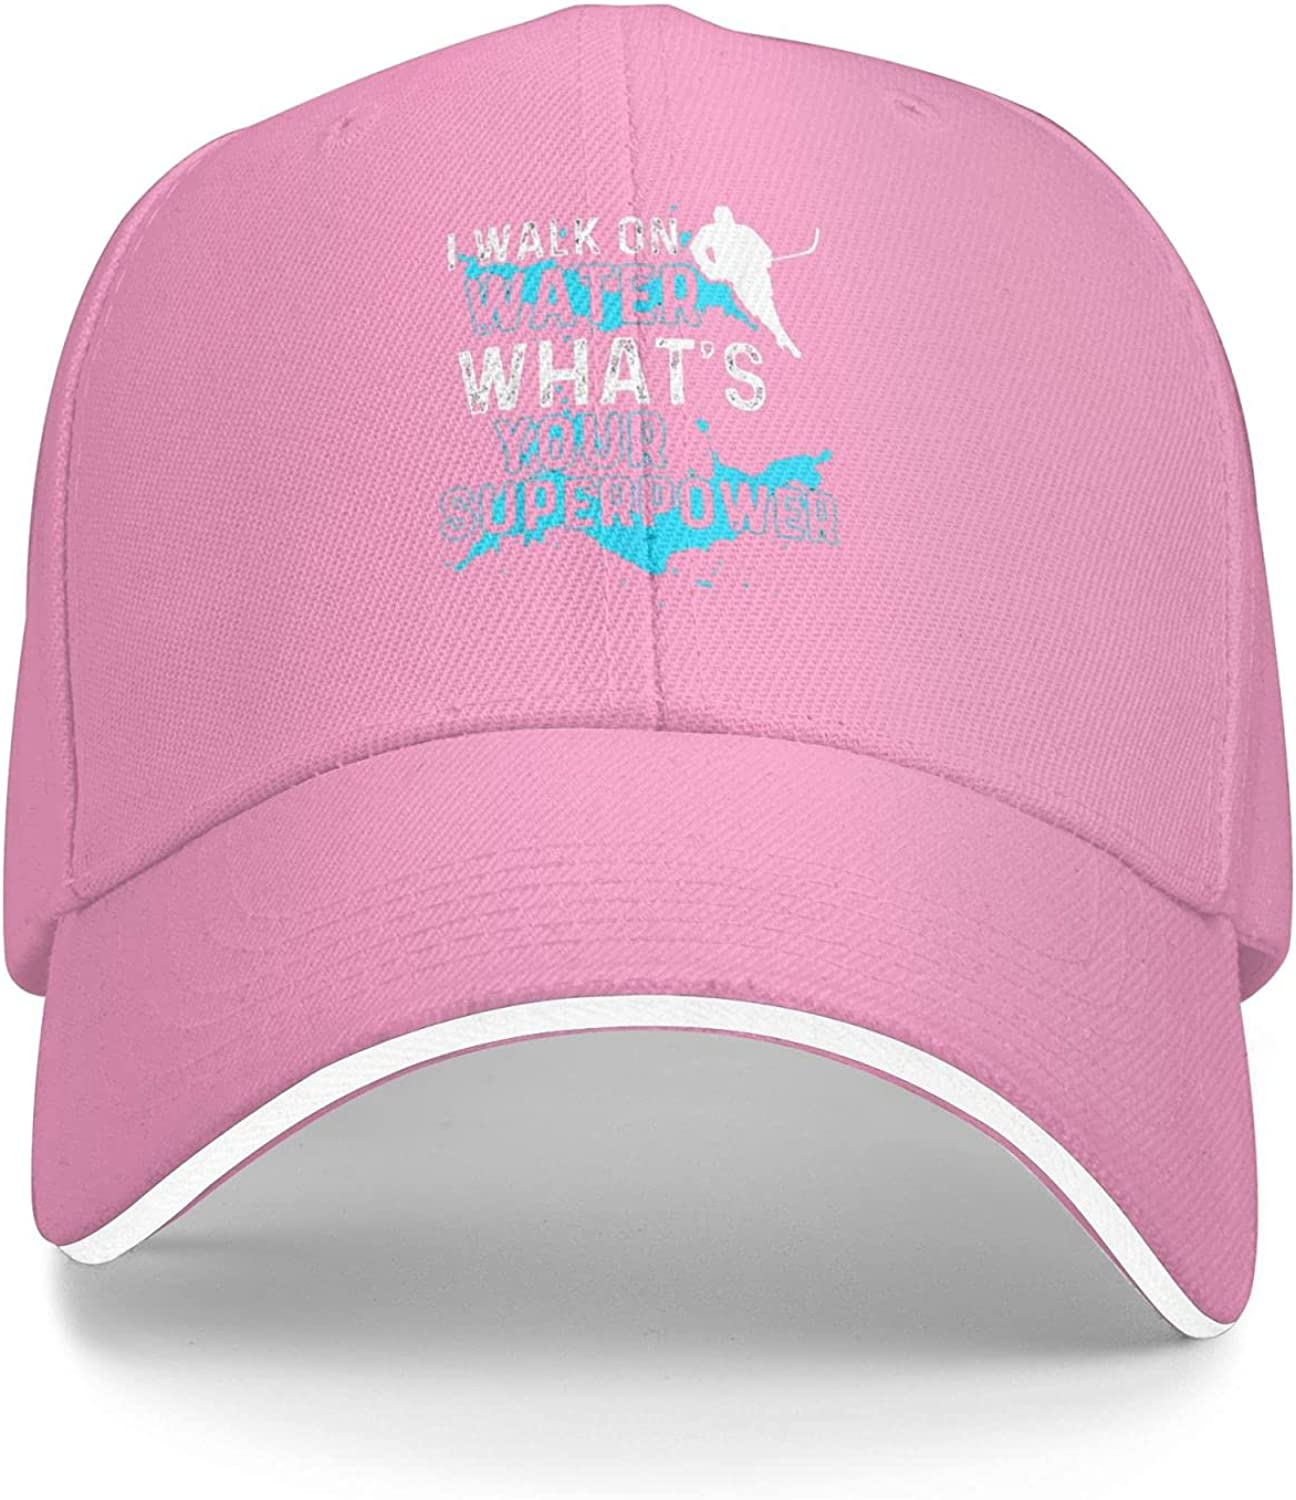 I Walk Now free shipping On Water Whats Your Sandwich Classic Hip-h Superpower hat 5 ☆ very popular